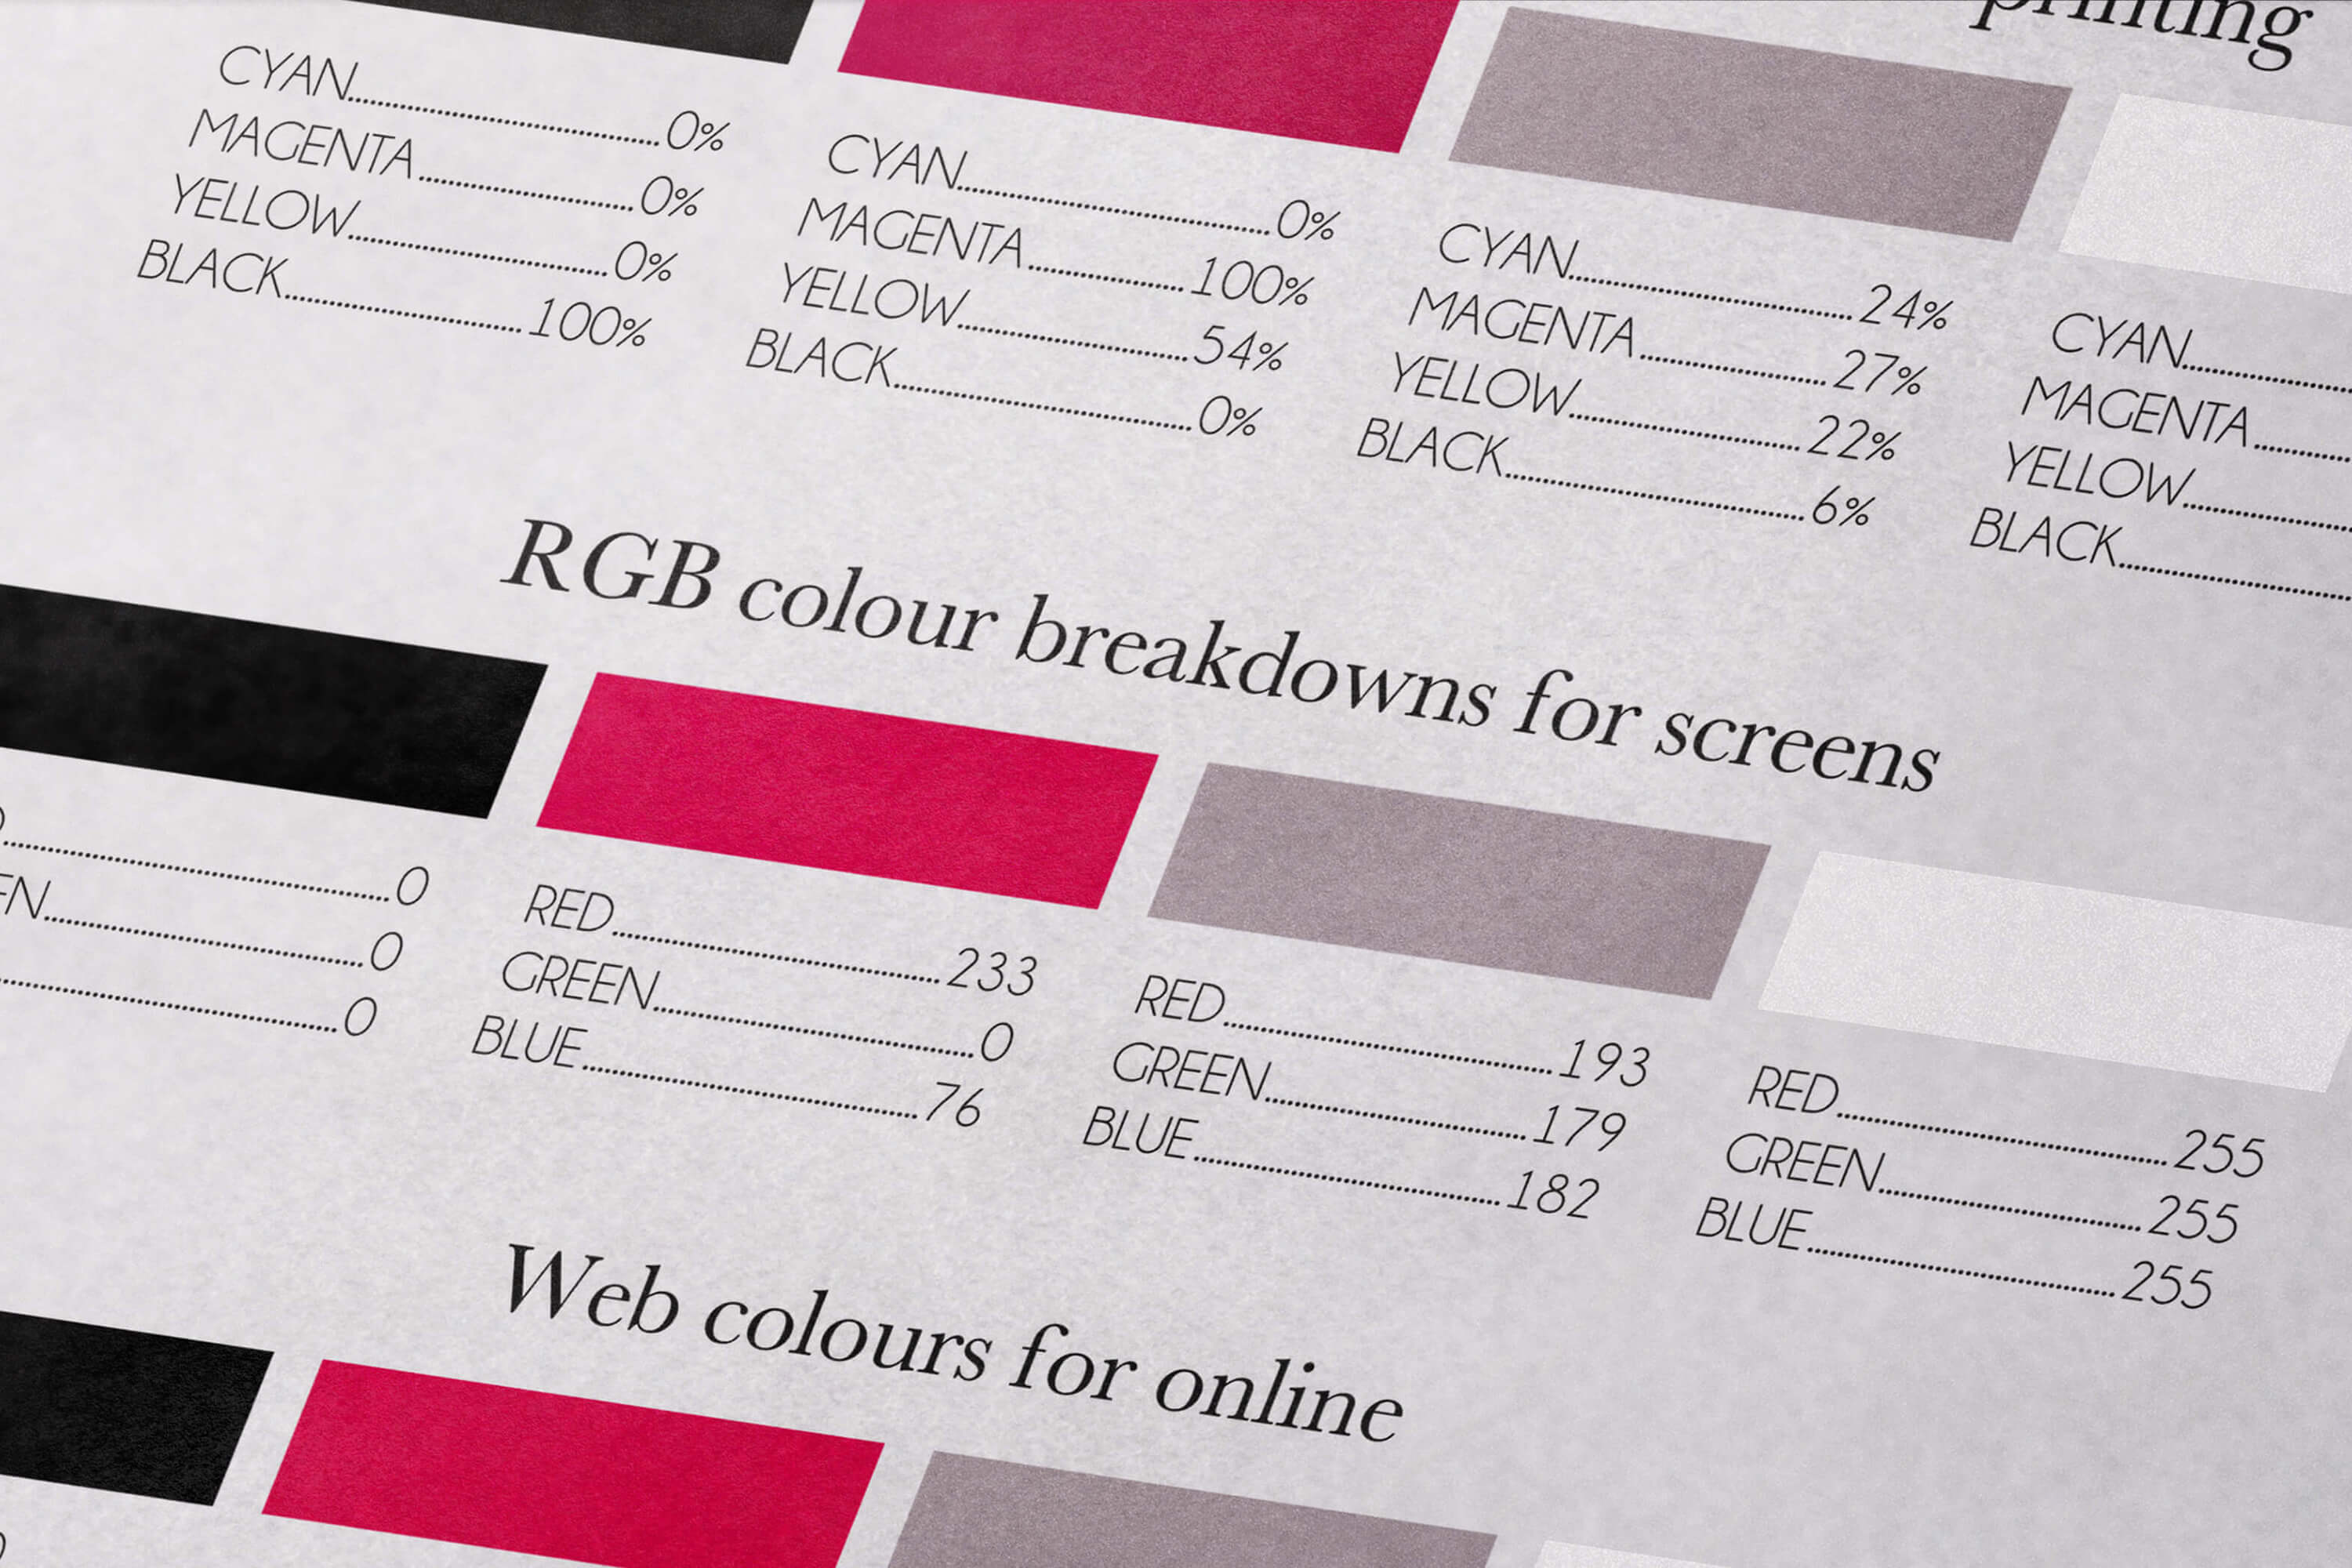 Close up of the Especial brand identity colour breakdowns